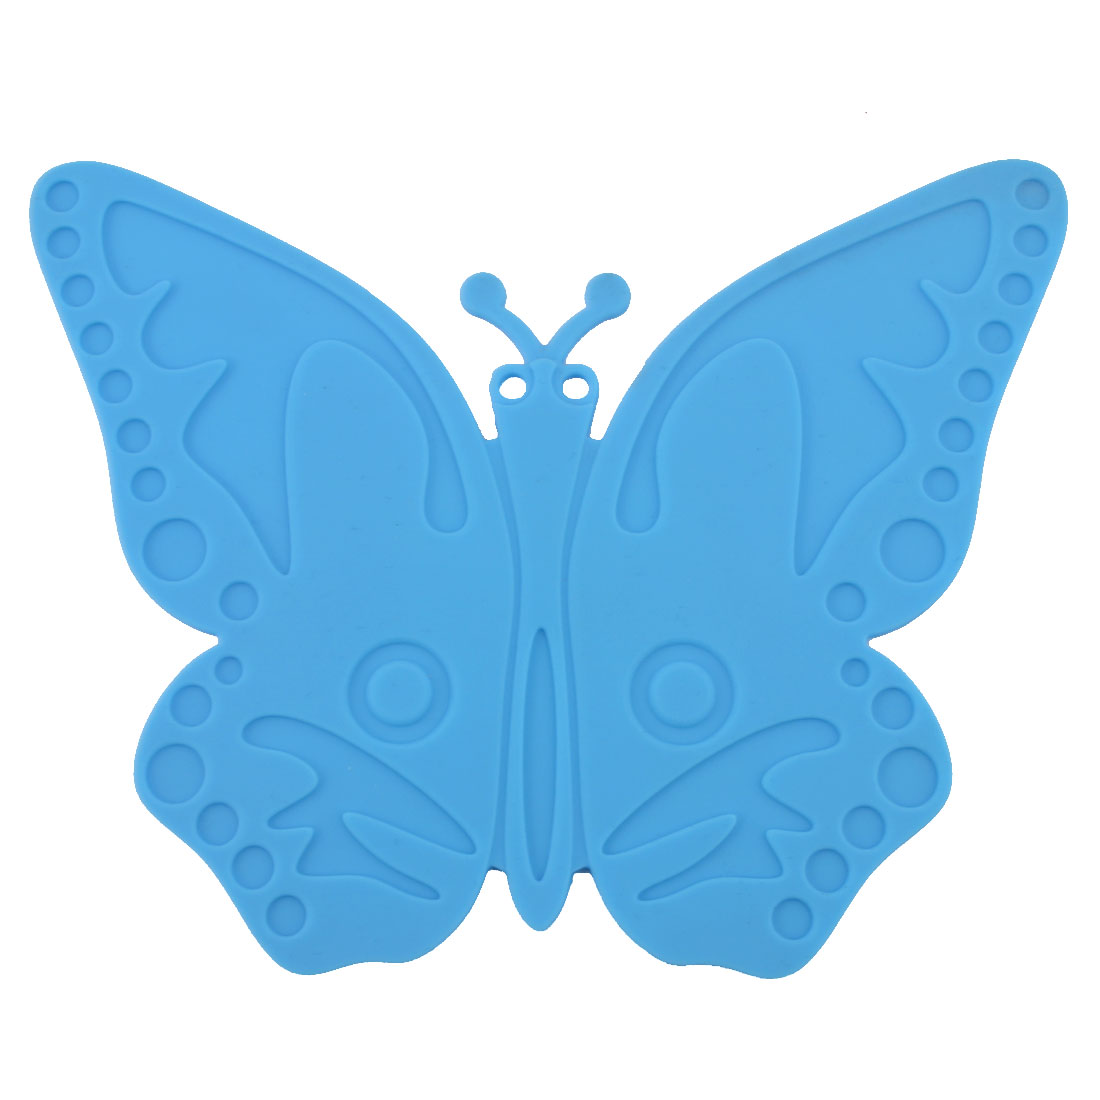 Silicone Butterfly Design Heat Resistant Mat Cup Coaster Cushion Placemat Blue